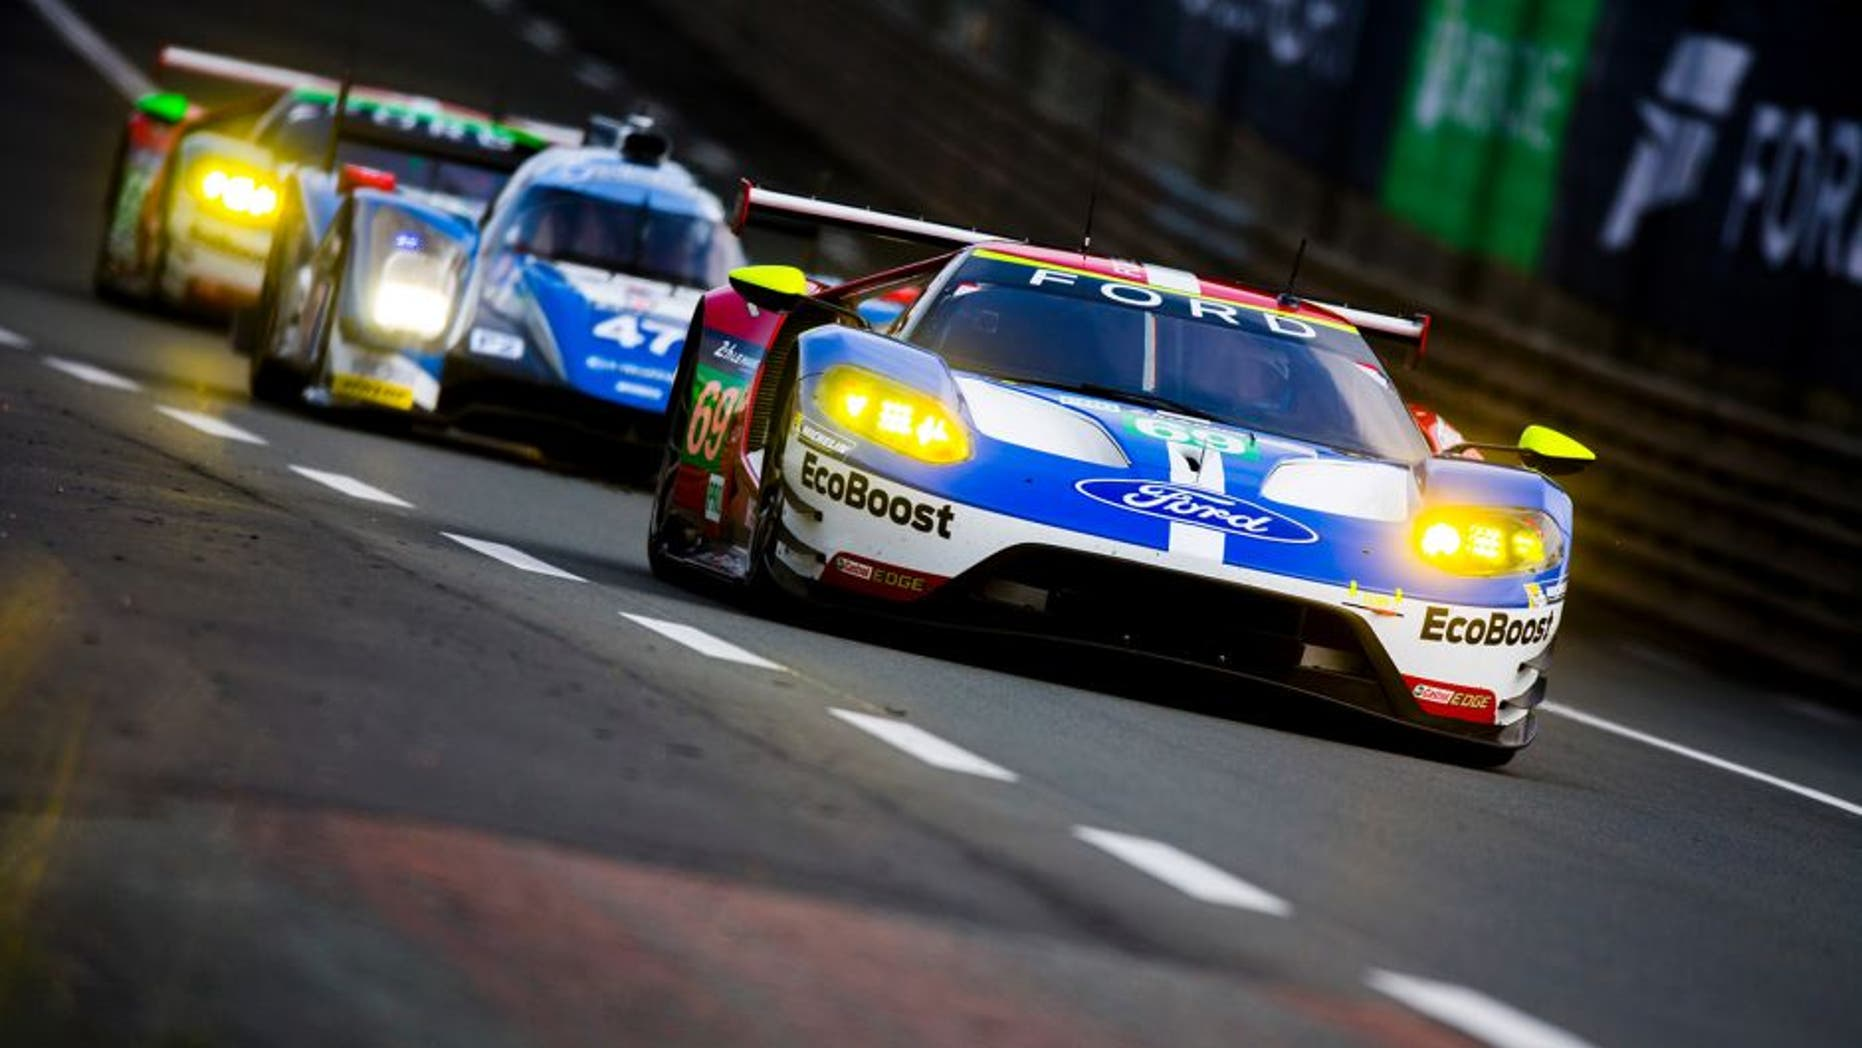 2016 Le Mans 24 Hours. Circuit de la Sarthe, Le Mans, France. Saturday 18 June 2016. Ford Chip Ganassi Team USA / Ford GT - Ryan Briscoe (AUS), Richard Westbrook (GBR), Scott Dixon (NZL). World Copyright: Zak Mauger/LAT Photographic ref: Digital Image _79P6705